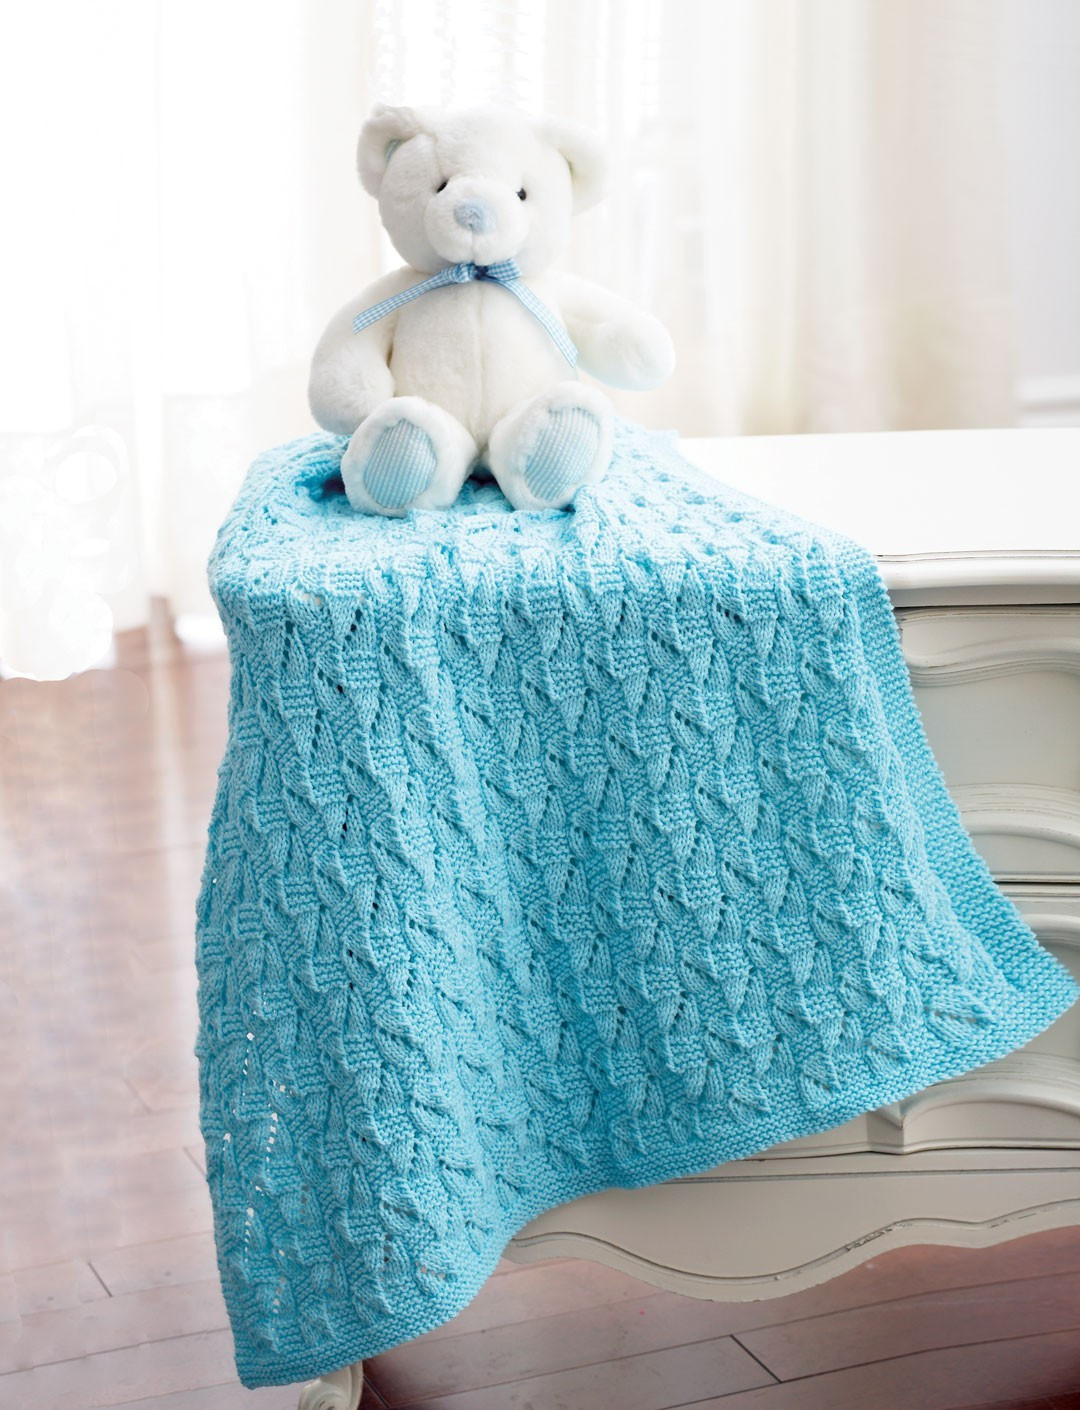 New Staggered Squares Blanket In Bernat Baby Sport Free Baby Knitting Patterns to Download Of Attractive 49 Ideas Free Baby Knitting Patterns to Download